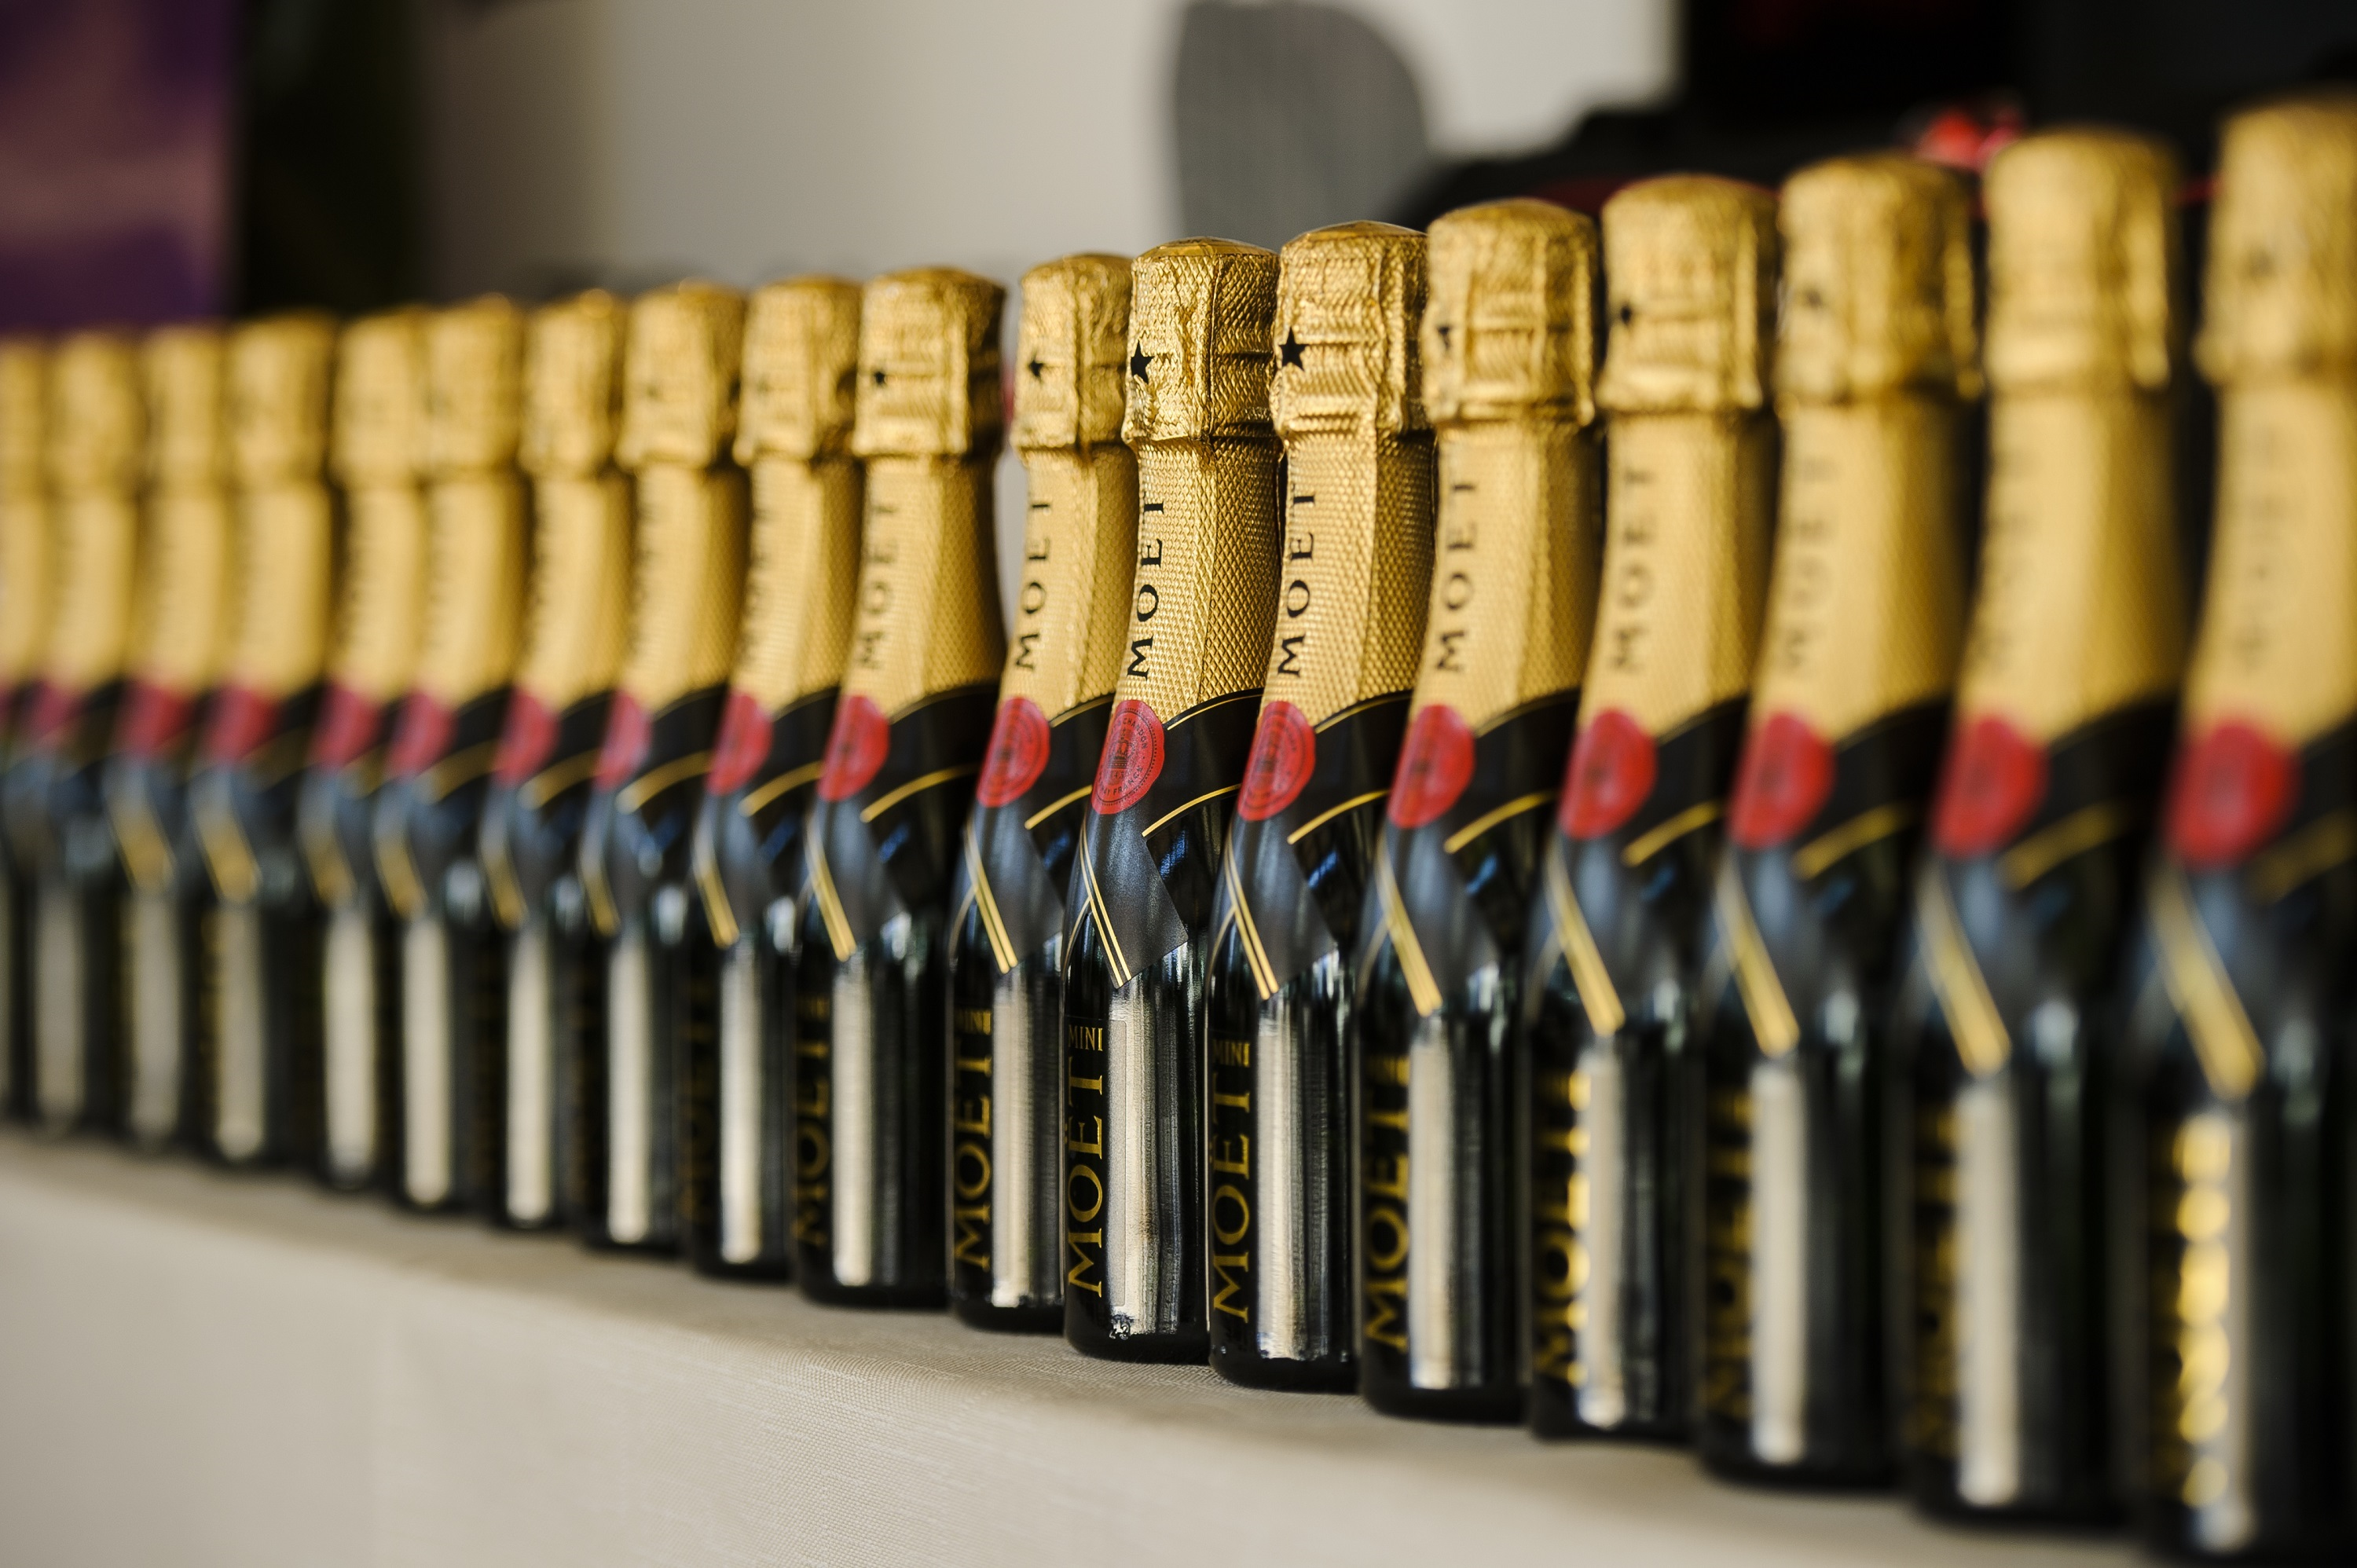 Row of Moet Chandon Champagne Bottles